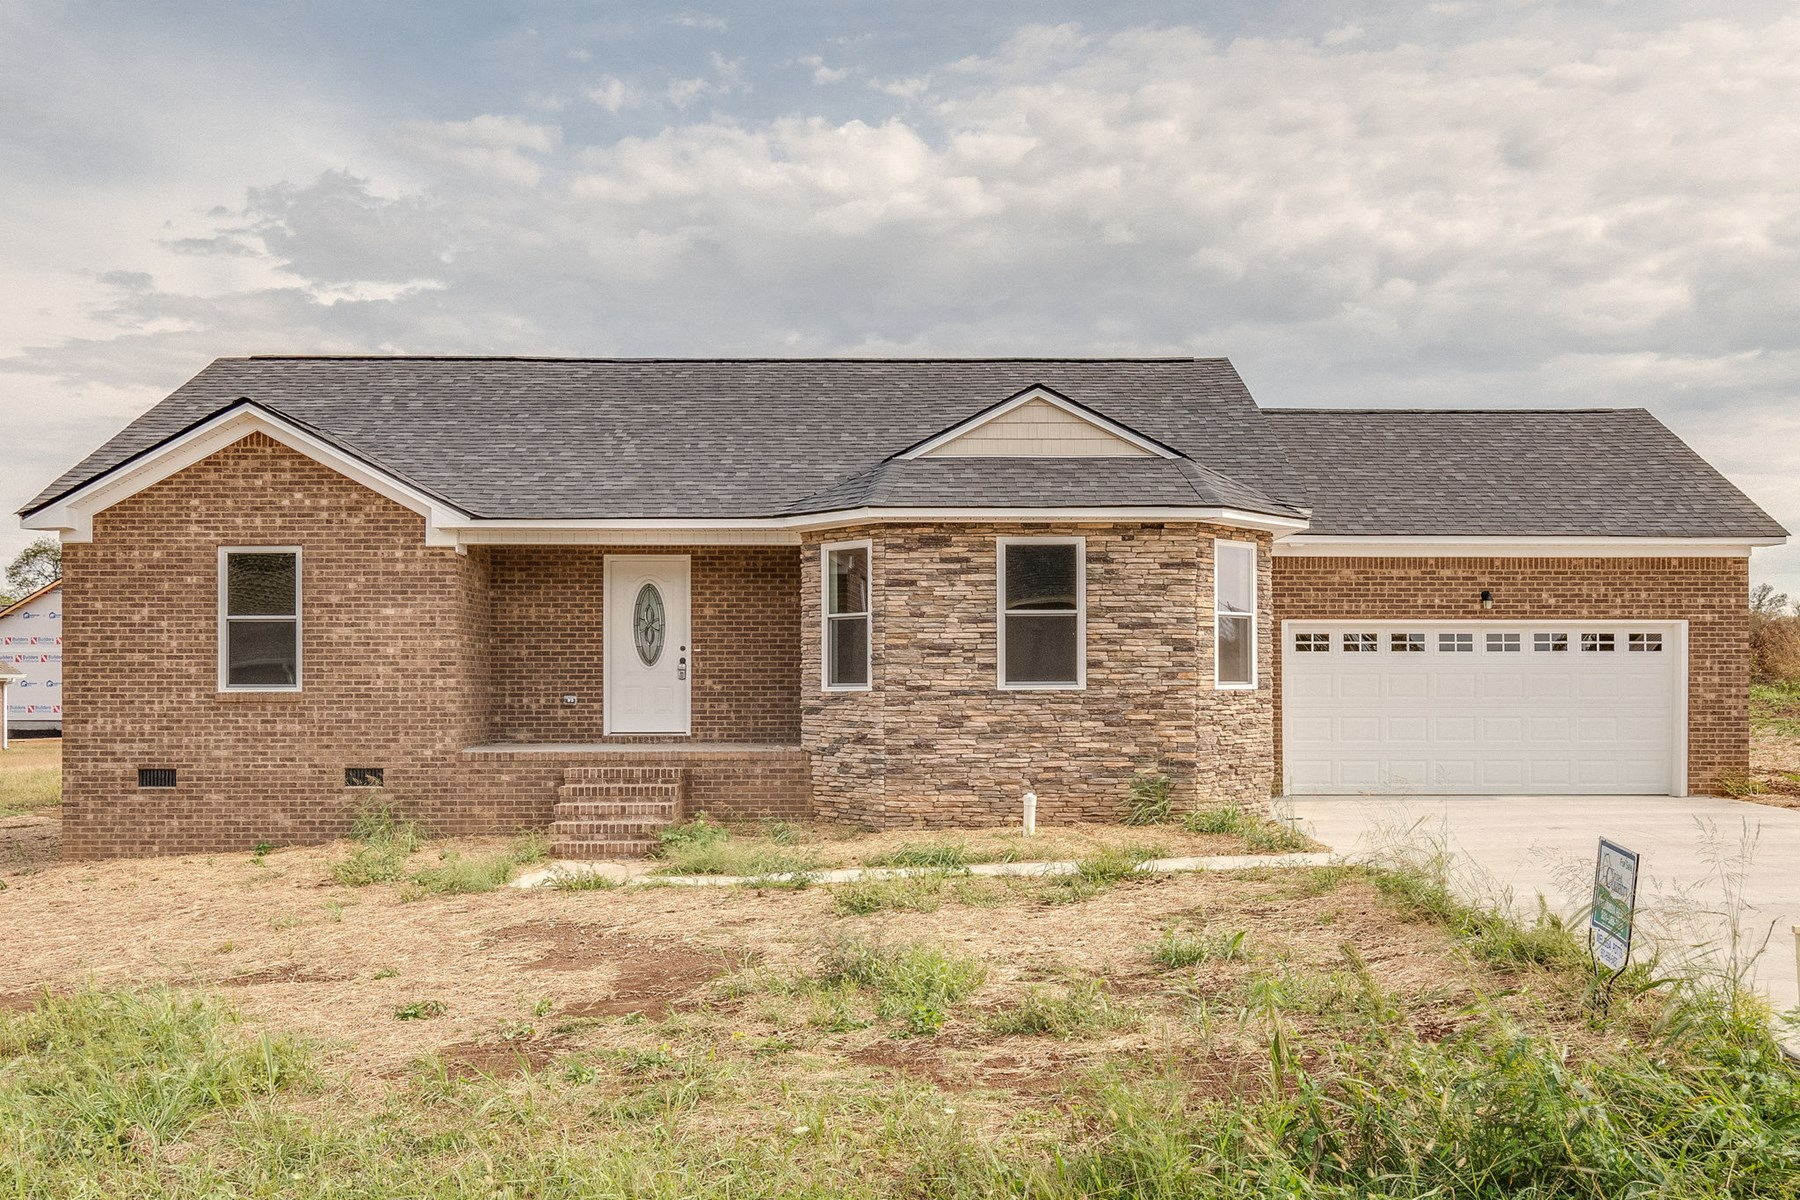 New Built Home with 1400 sqft. in Mt. Pleasant, Tennessee